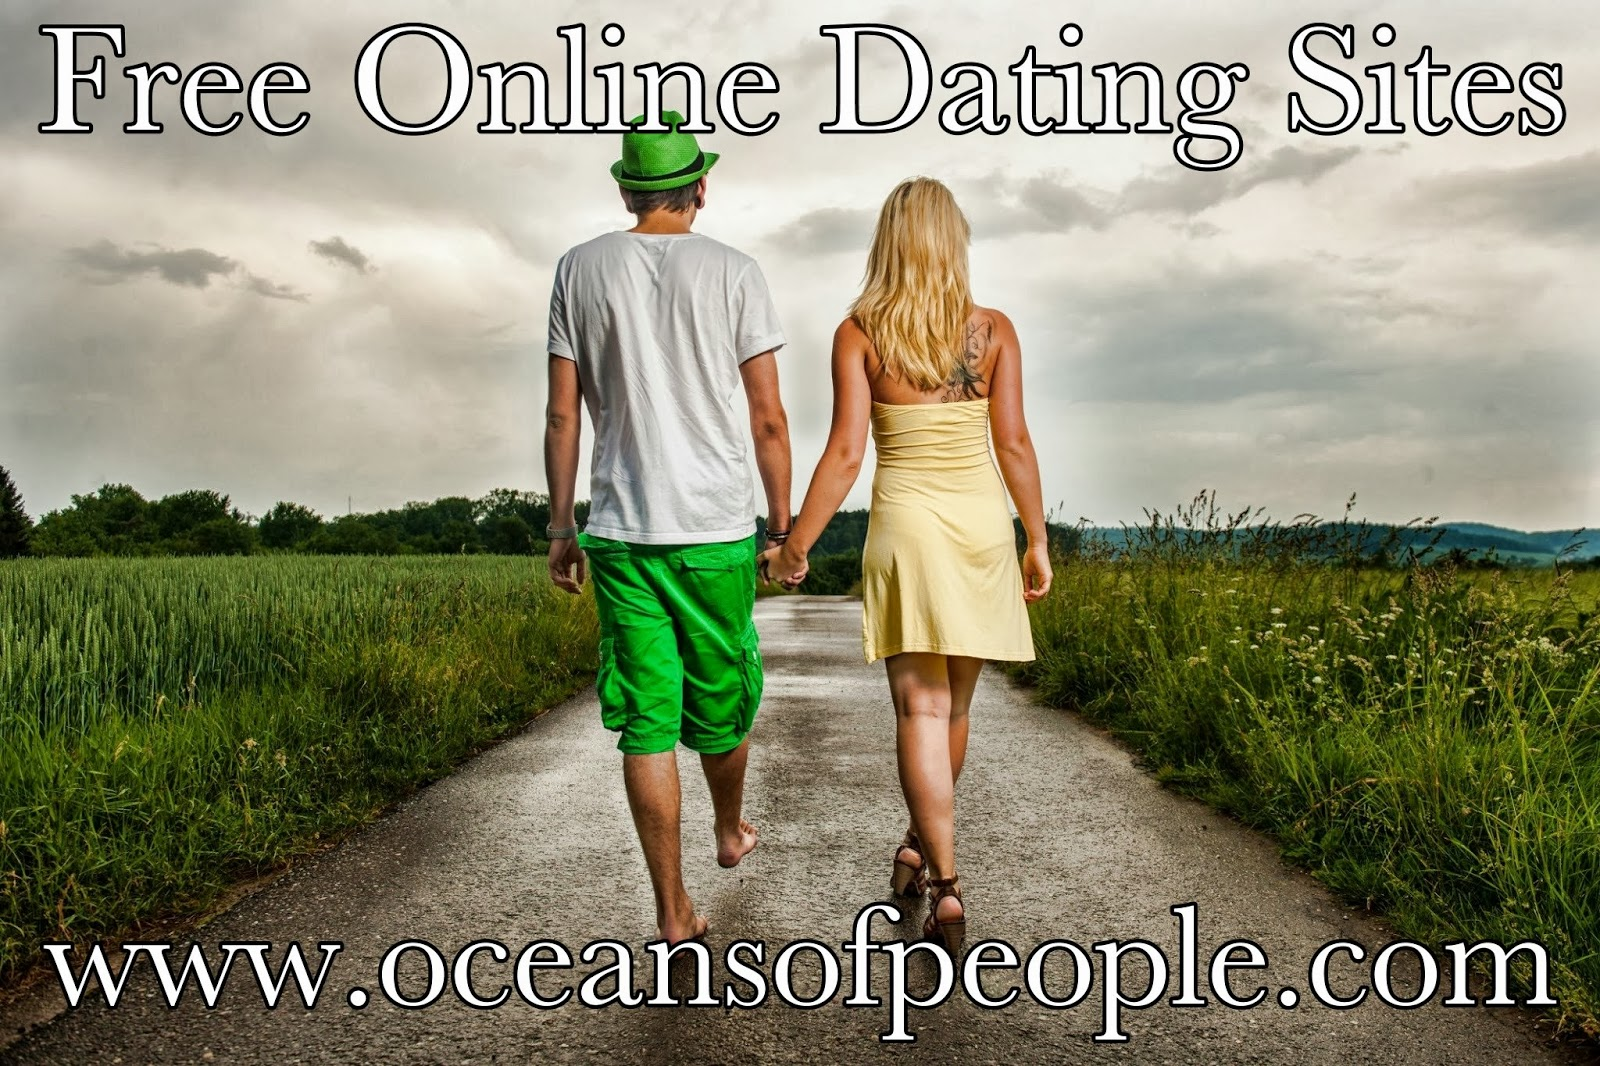 Free online dating sites in az